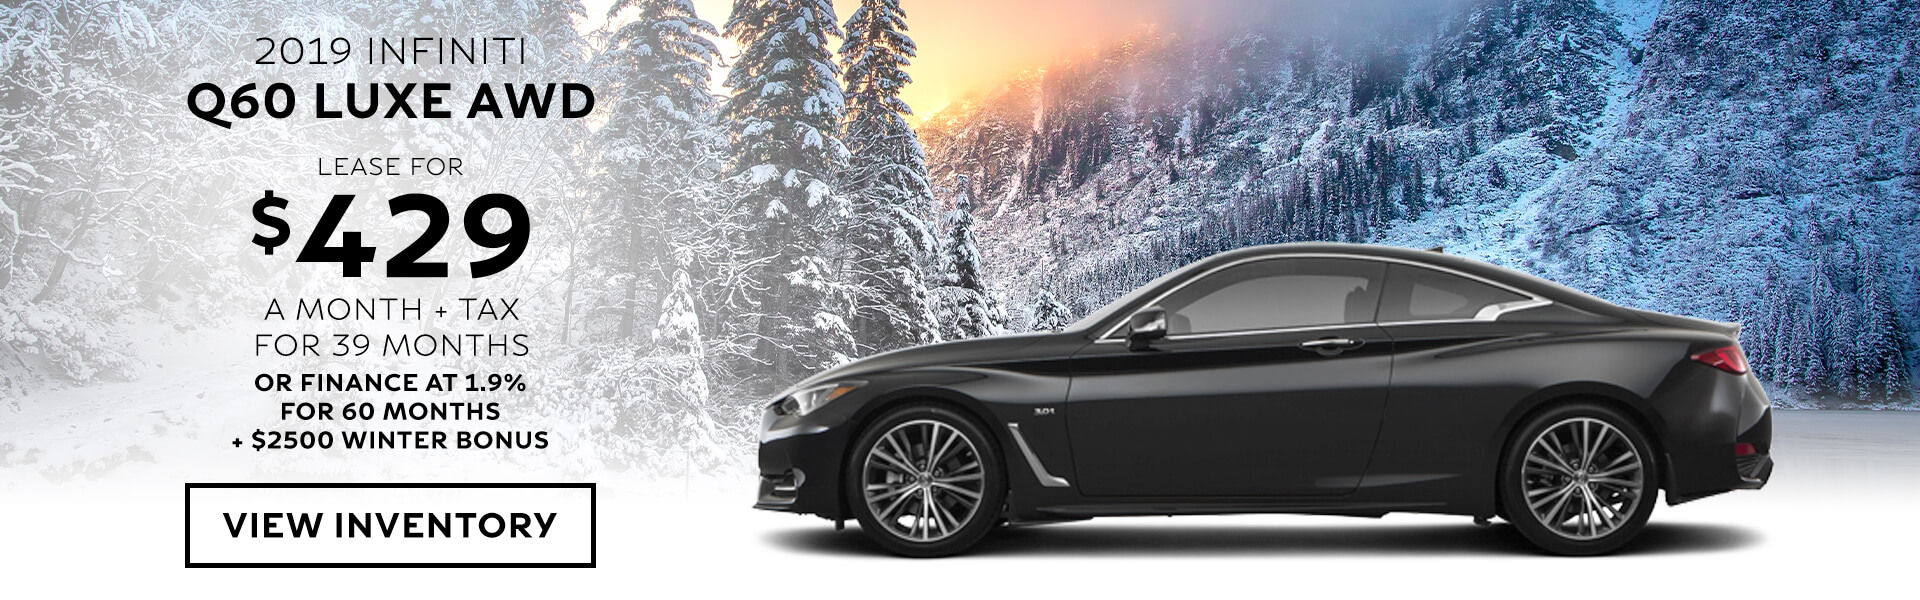 Q60 LUXE - Lease for $429